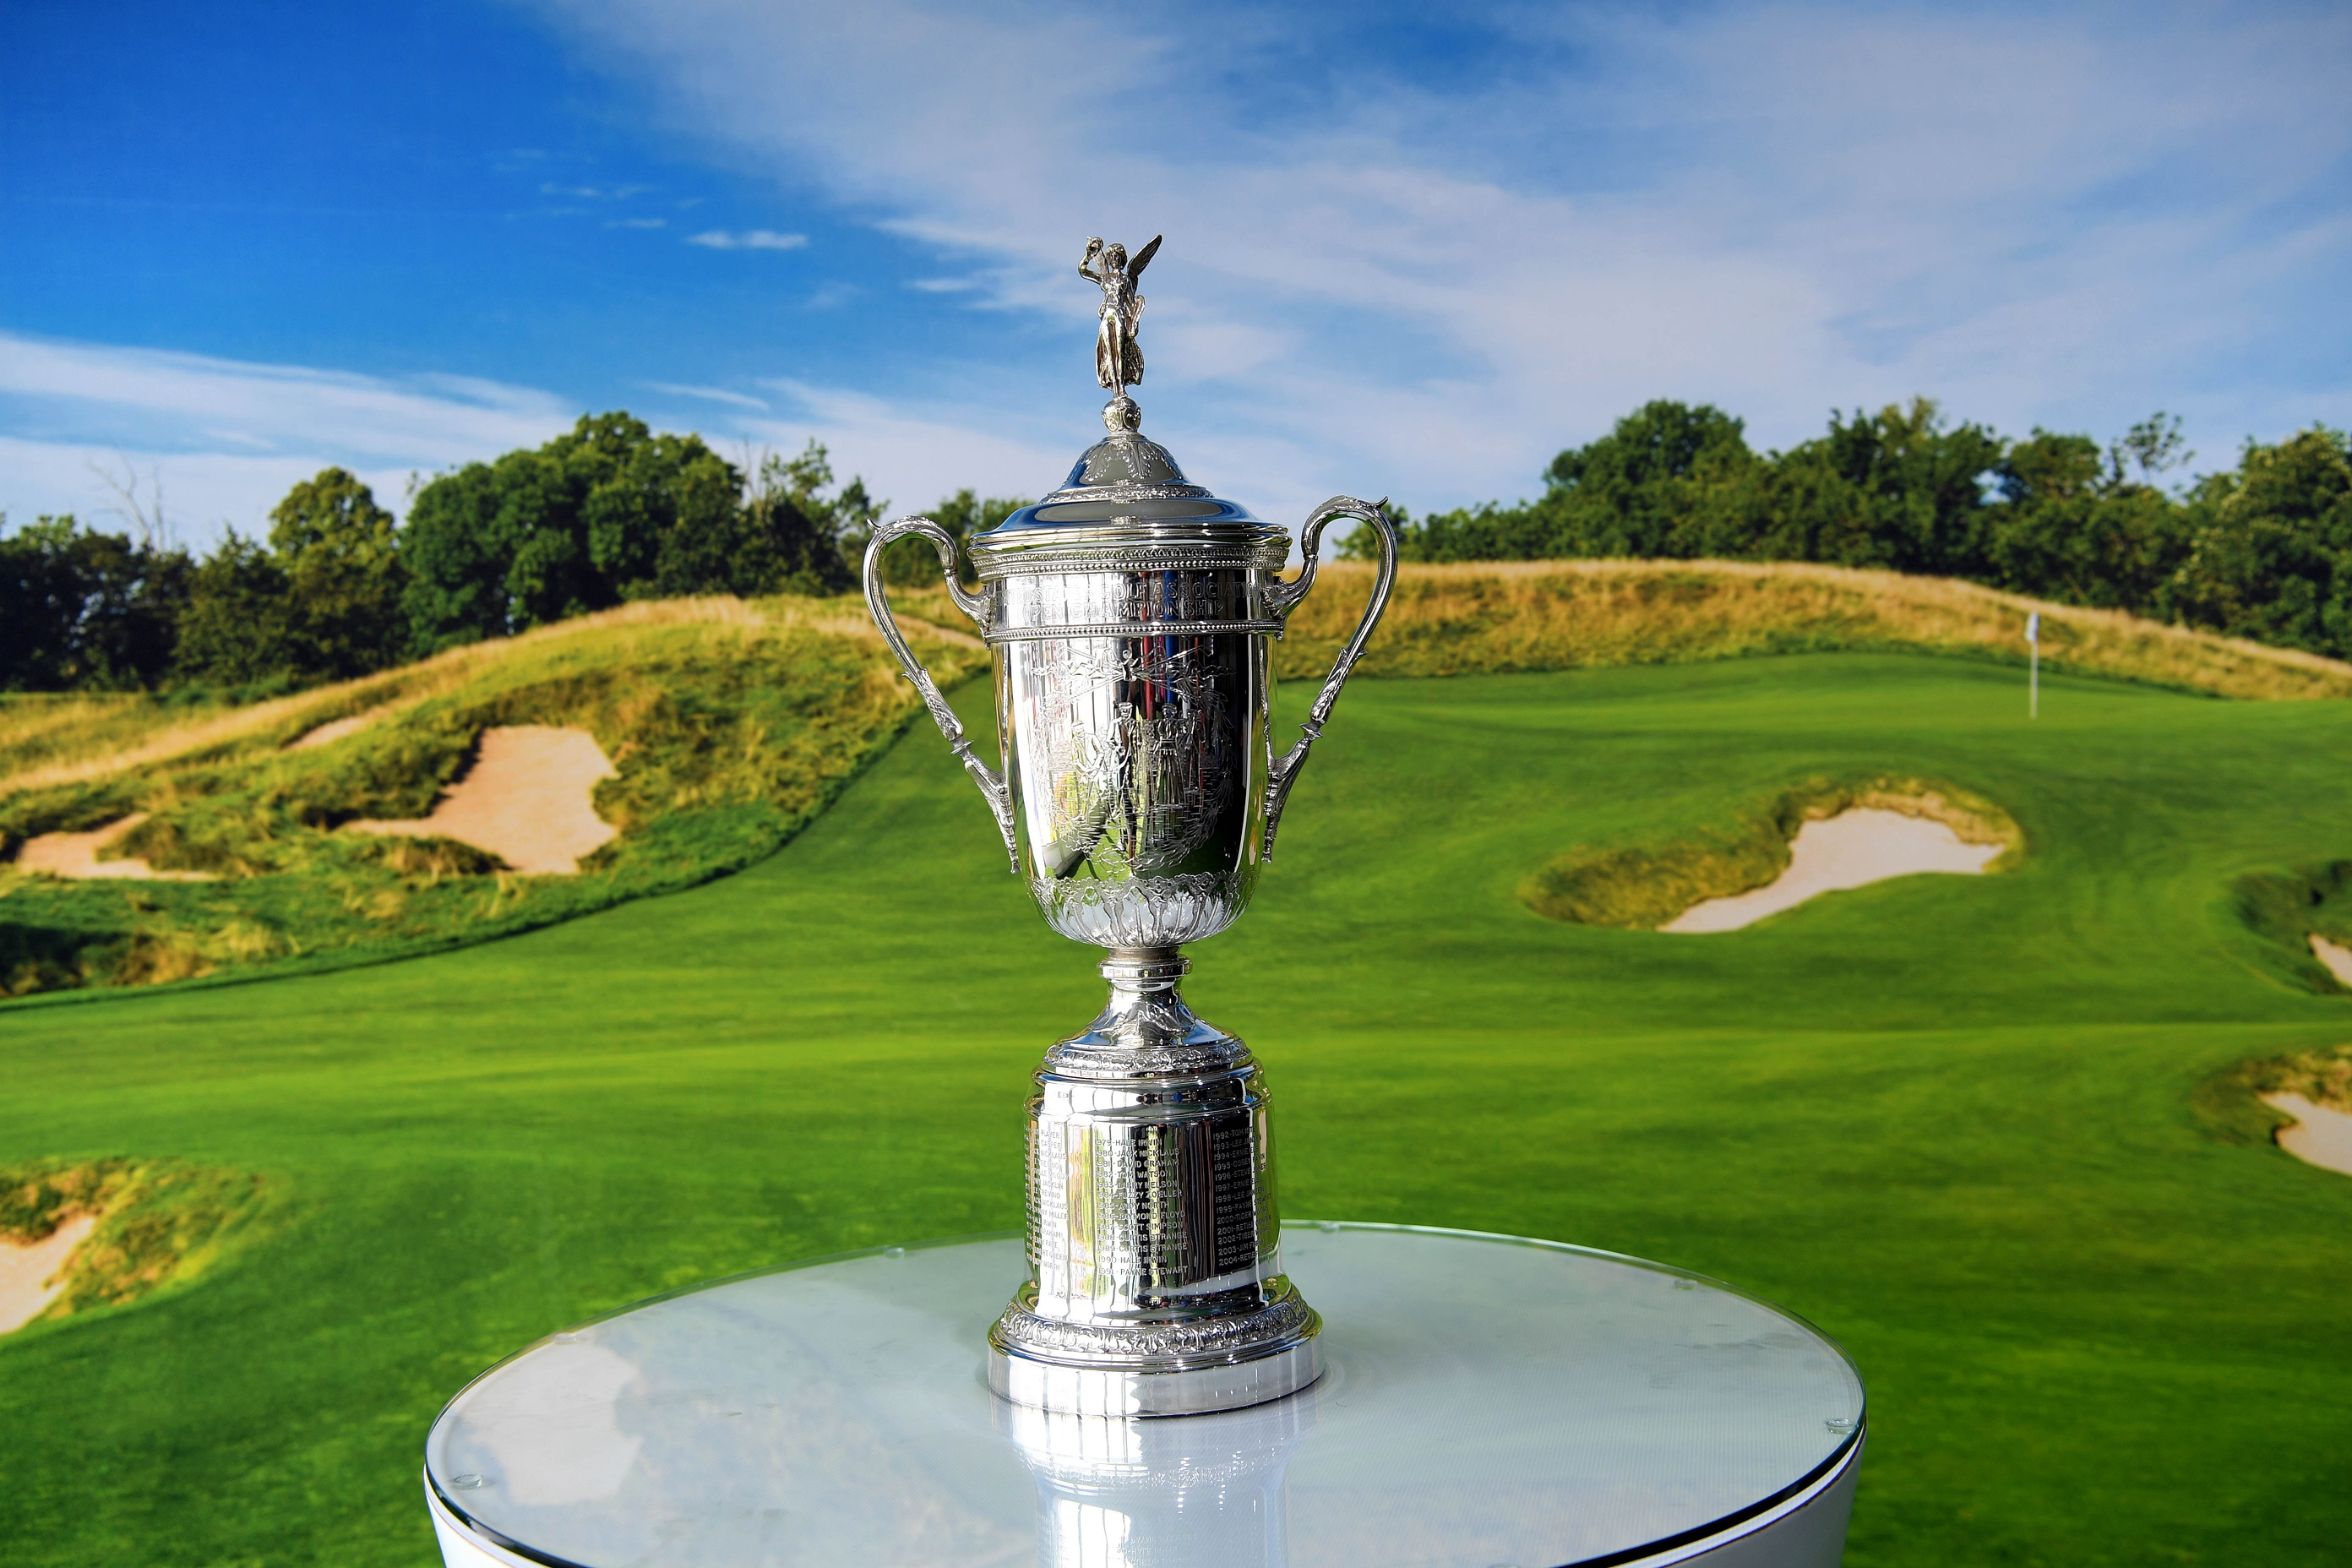 US Open Golf Championship Continues After First Round ...